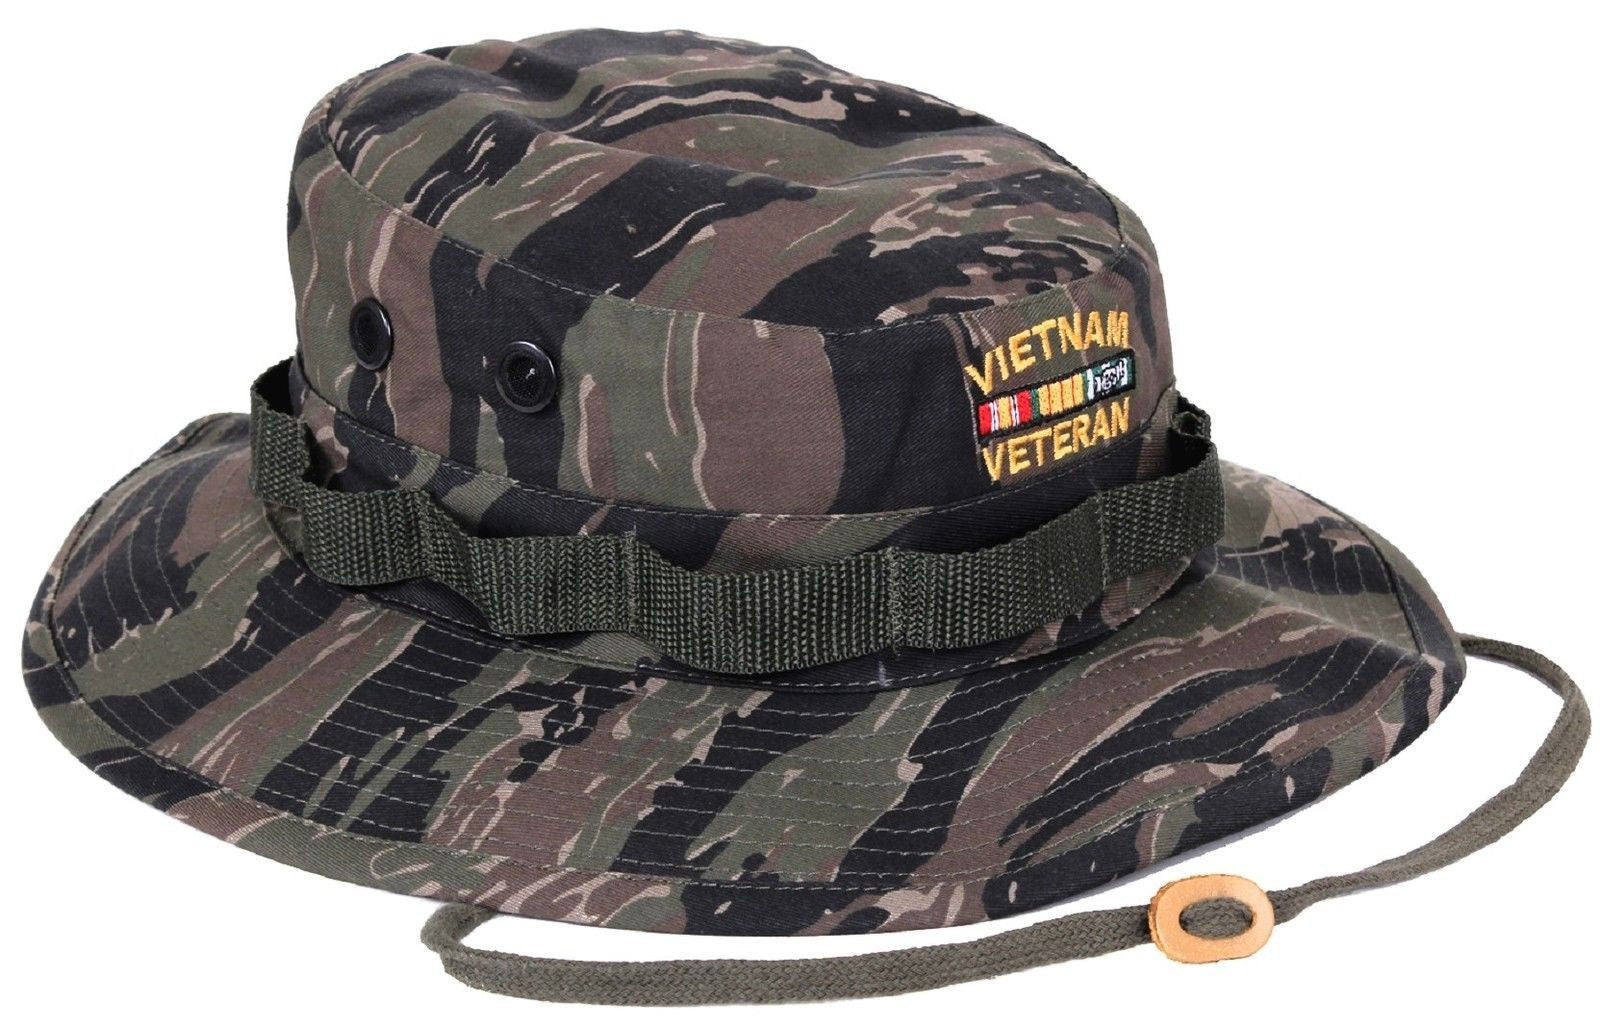 66a121b1b85 ... Embroidered VIETNAM VETERAN Boonie Bucket Hat S - XL NWT. Zoom. Move  your mouse over image or click to enlarge